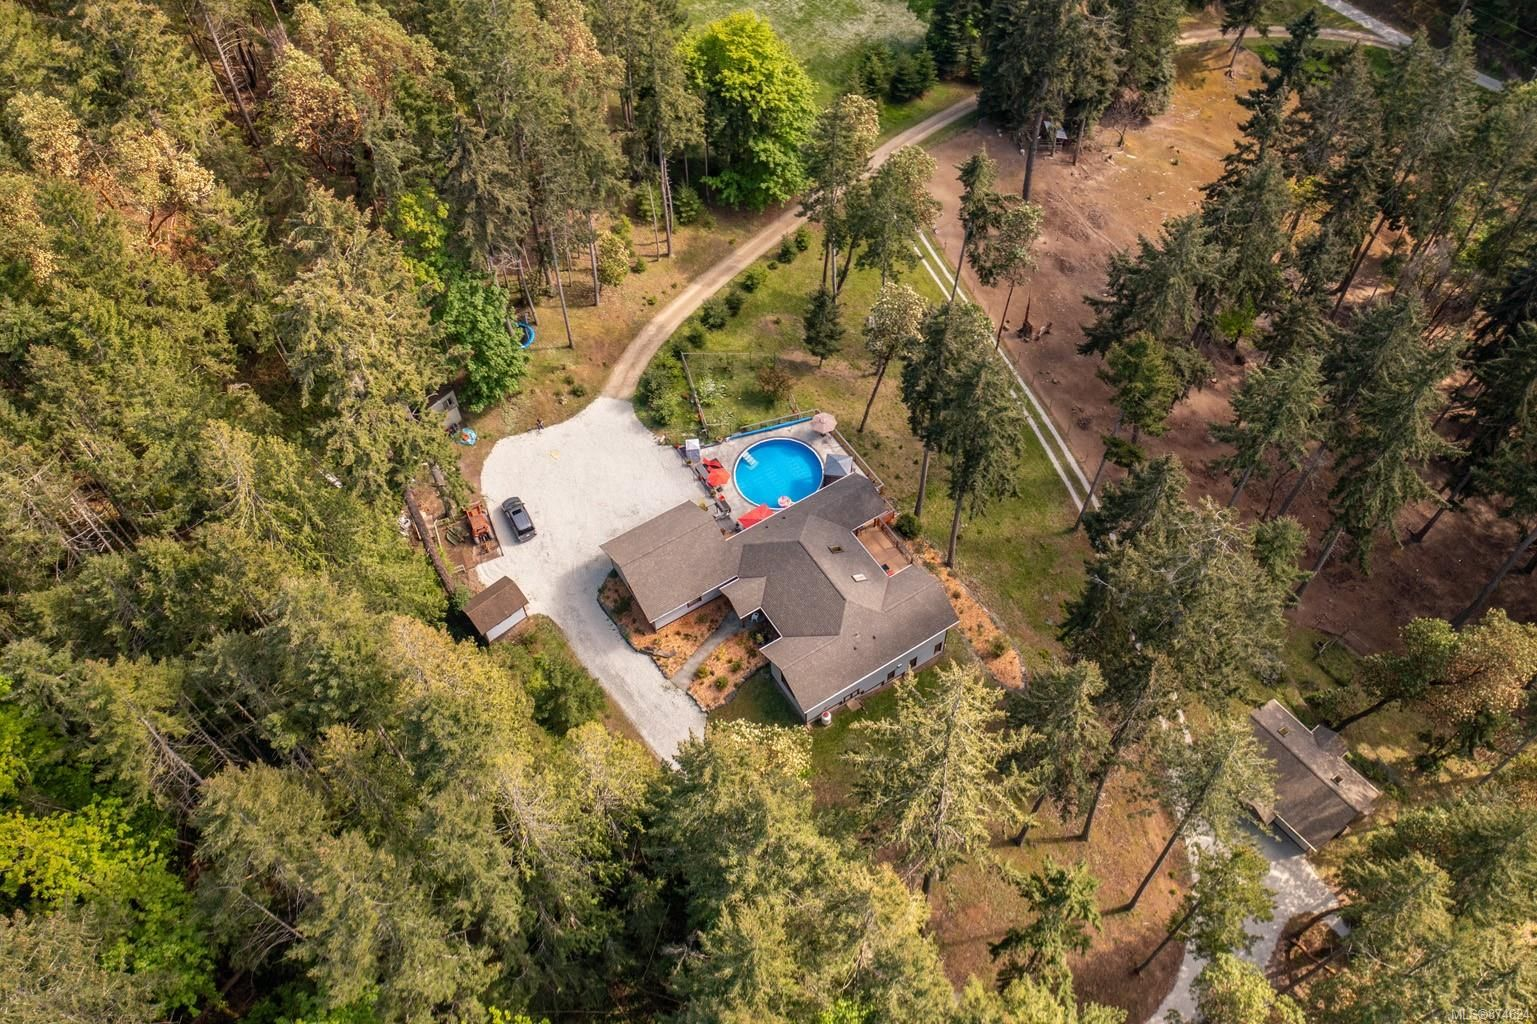 Main Photo: 1041 Sunset Dr in : GI Salt Spring House for sale (Gulf Islands)  : MLS®# 874624